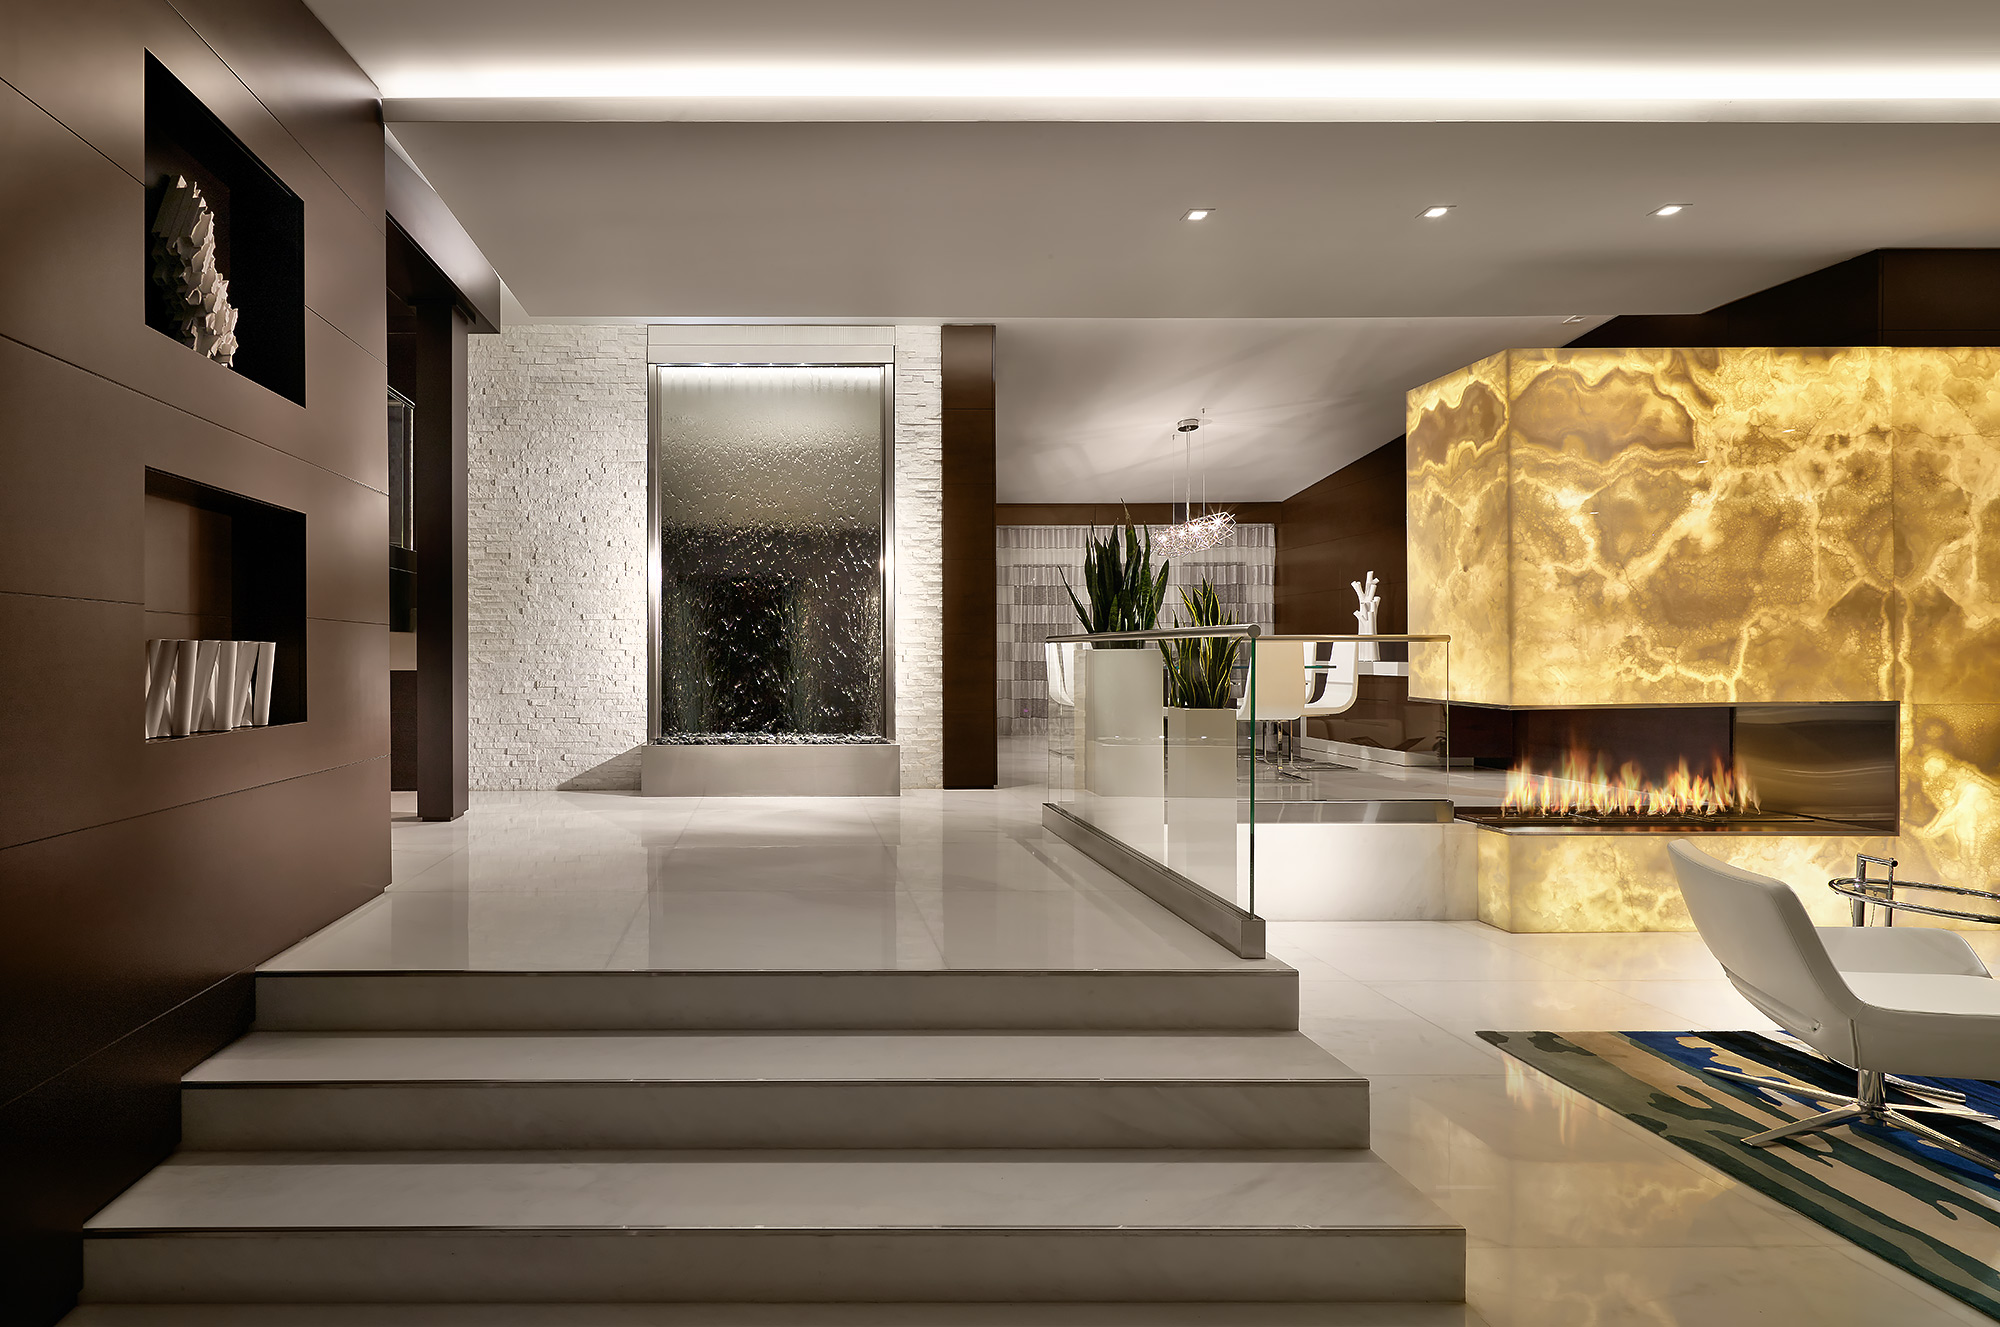 South-Florida-Entry-Foyer-Interior-Pepe-Calderin-Design-Miami